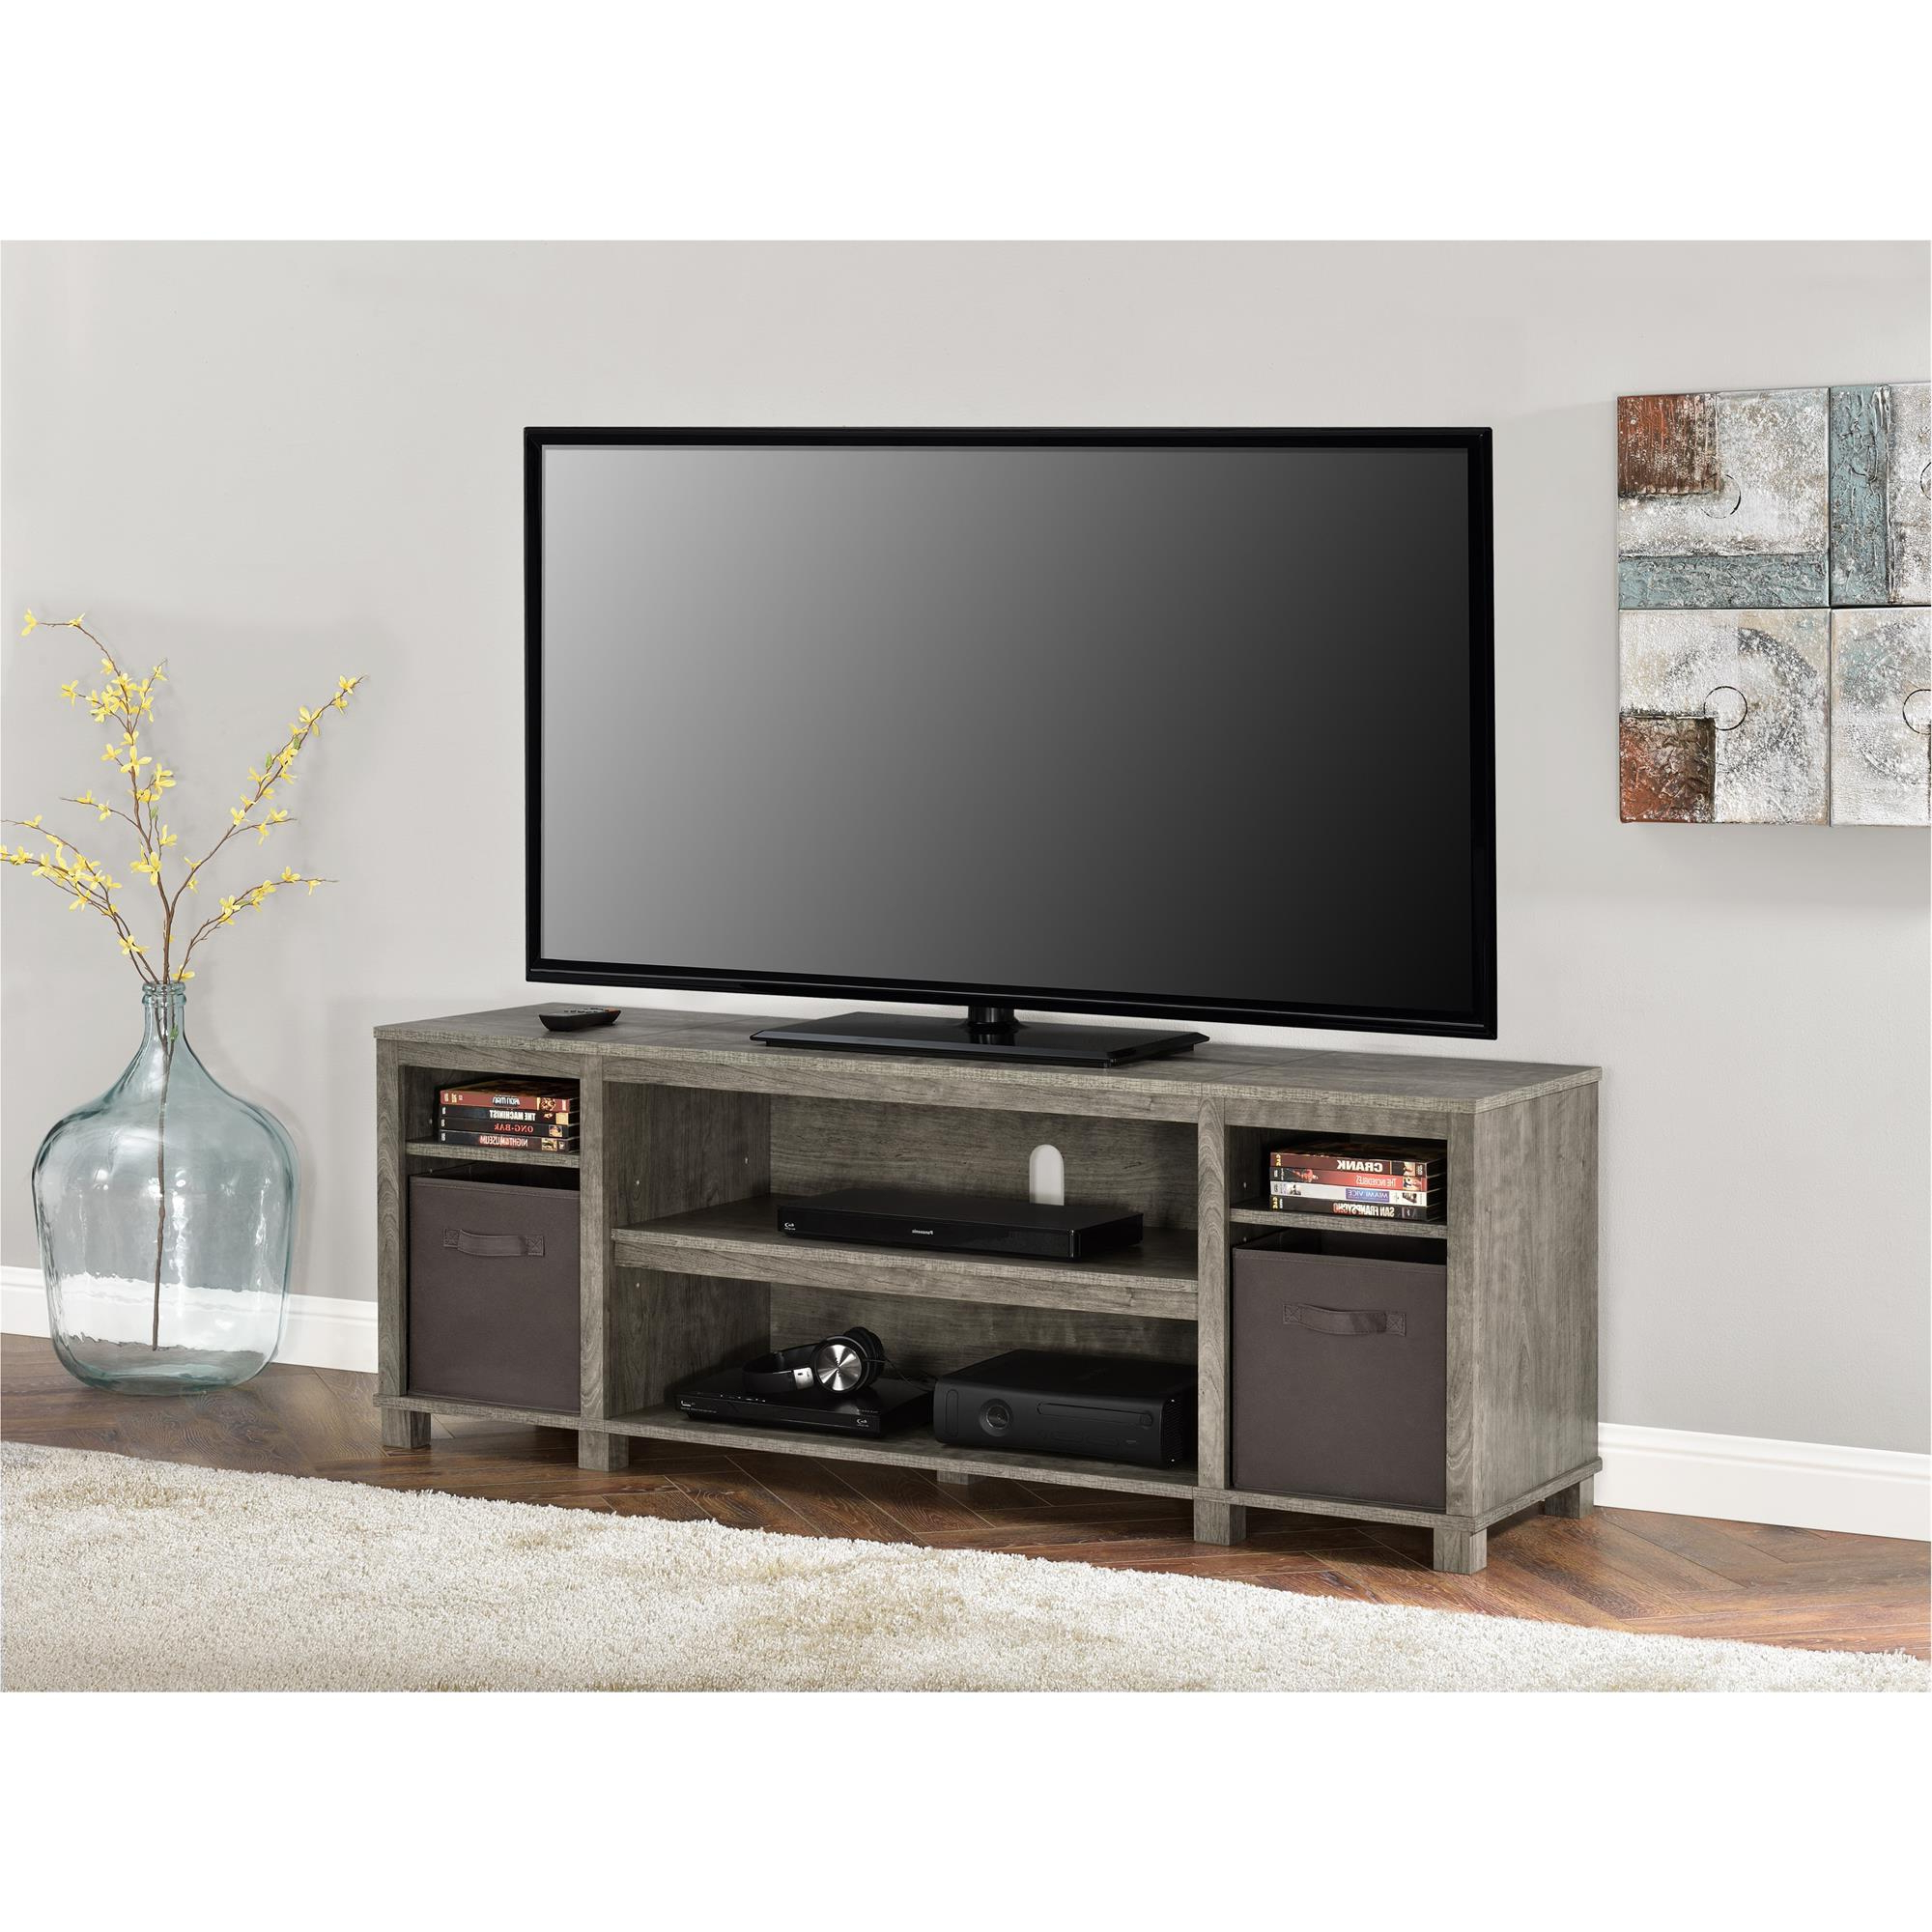 """Mainstays Tv Stand With Bins For Tvs Up To 65"""", Multiple With Most Current Buckley Tv Stands For Tvs Up To 65"""" (View 10 of 20)"""